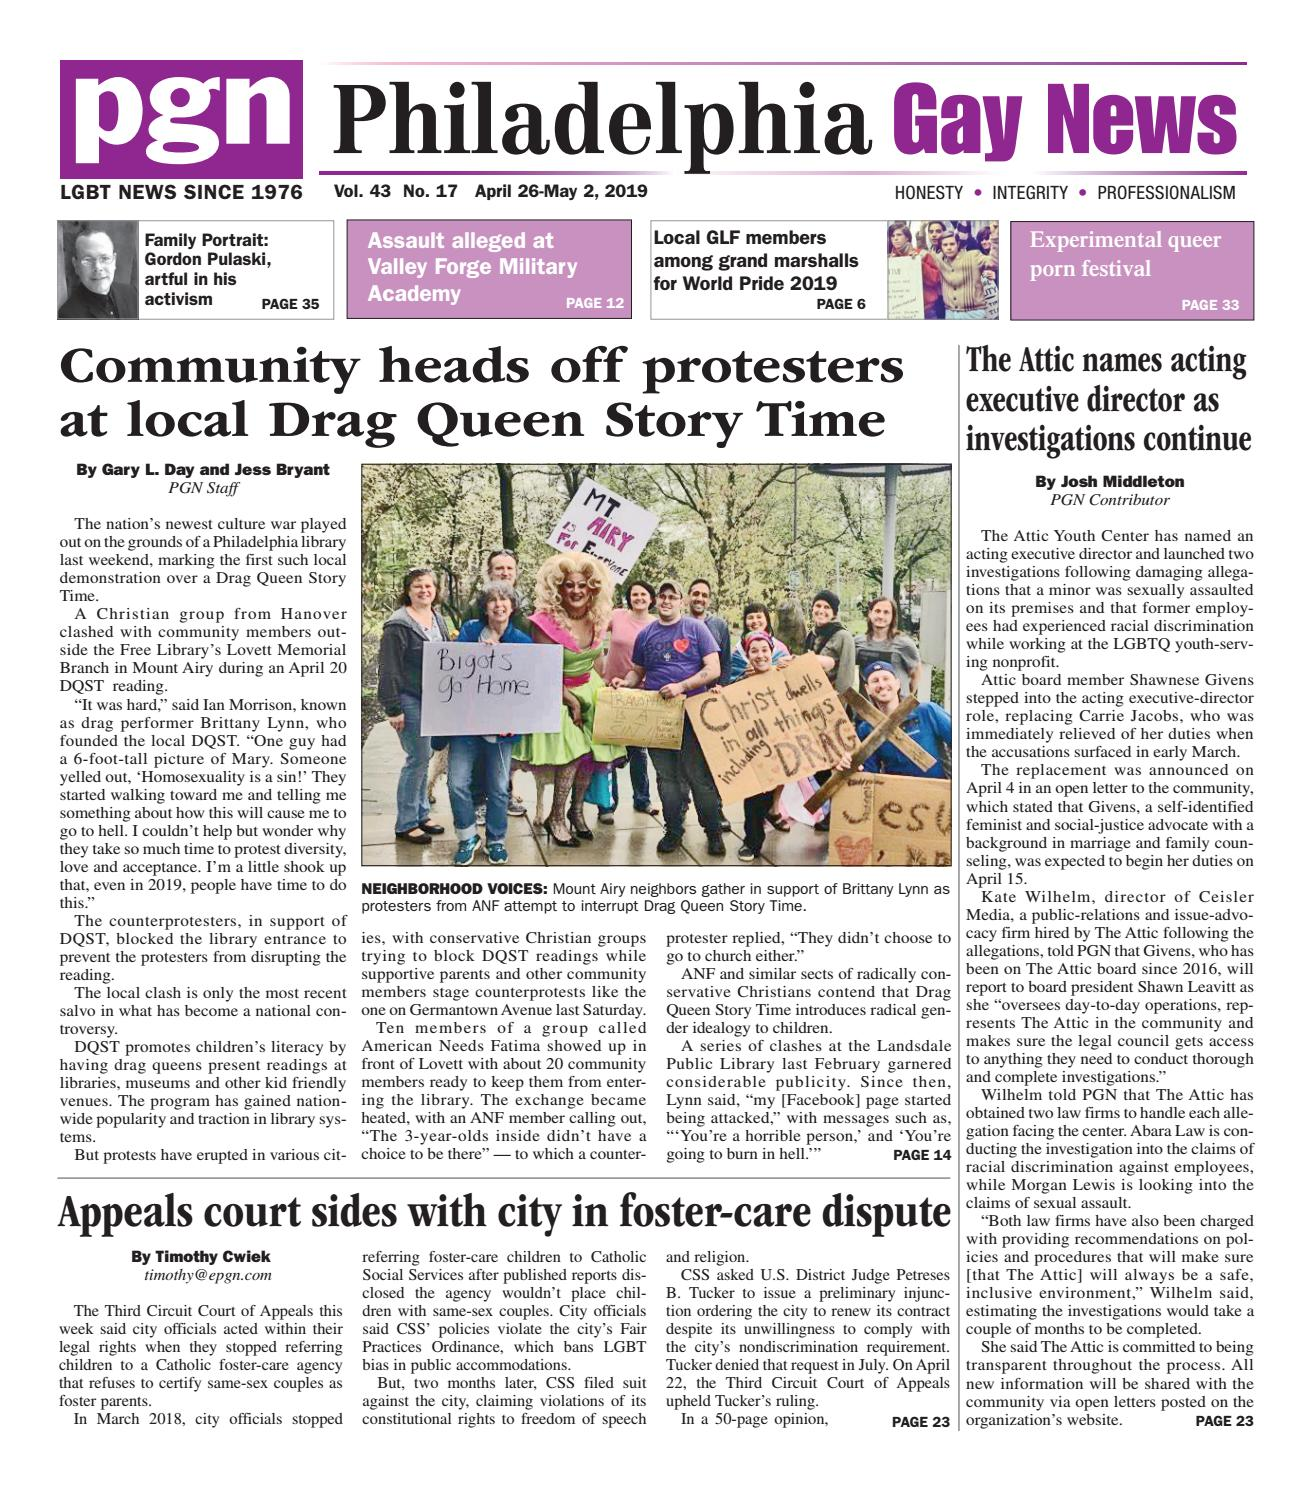 Anika Animal Crossing Porn pgn april 26- may 2, 2019the philadelphia gay news - issuu